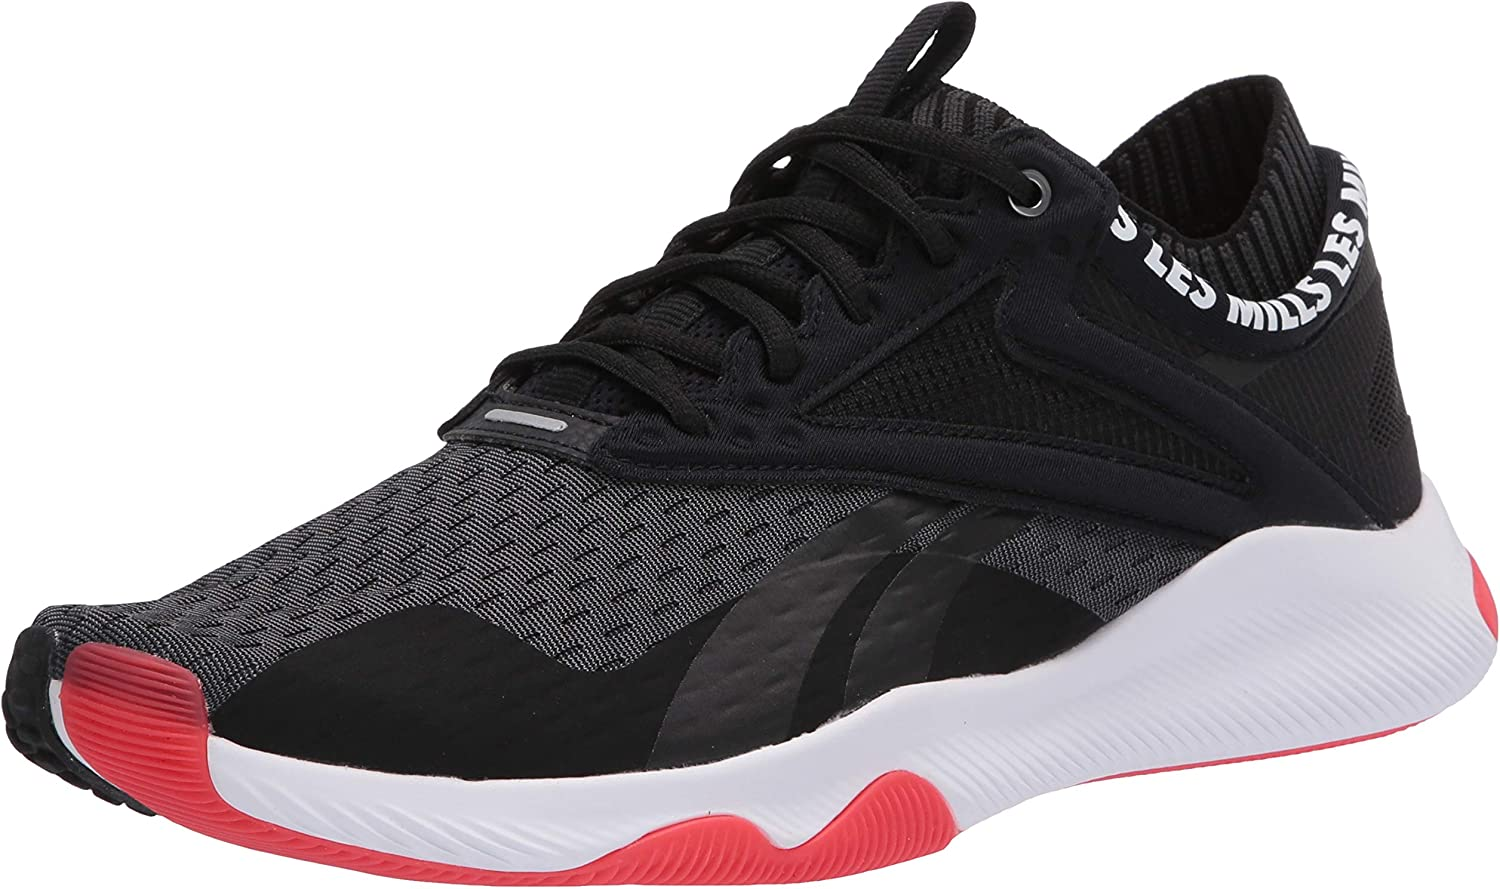 Reebok Men's HIIT Tr Cross Trainer